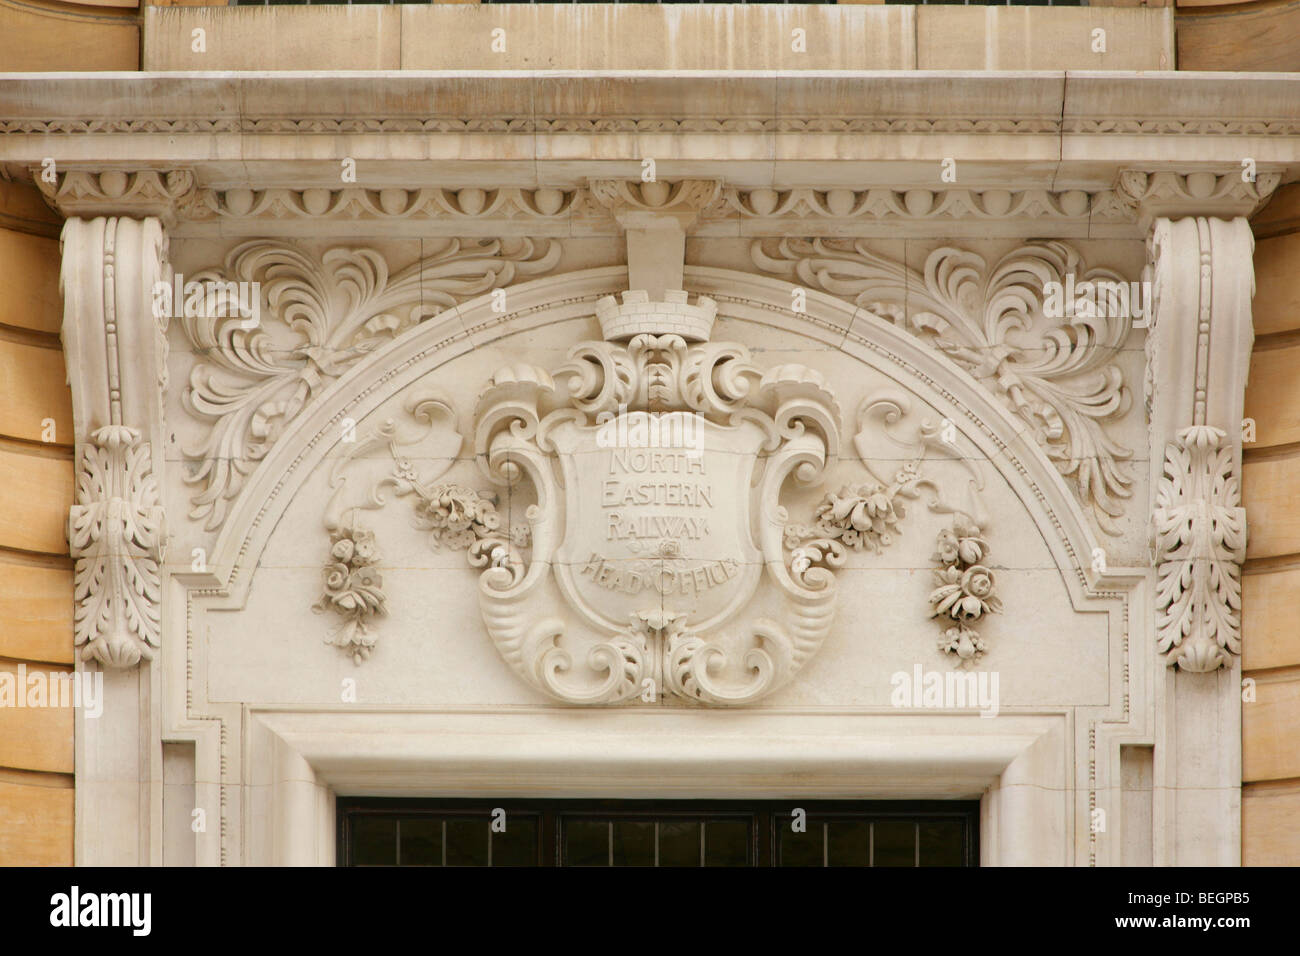 Ornate crest over the entrance to the old North Eastern Railway Head Office, Station Rise, York, United Kindgom. - Stock Image